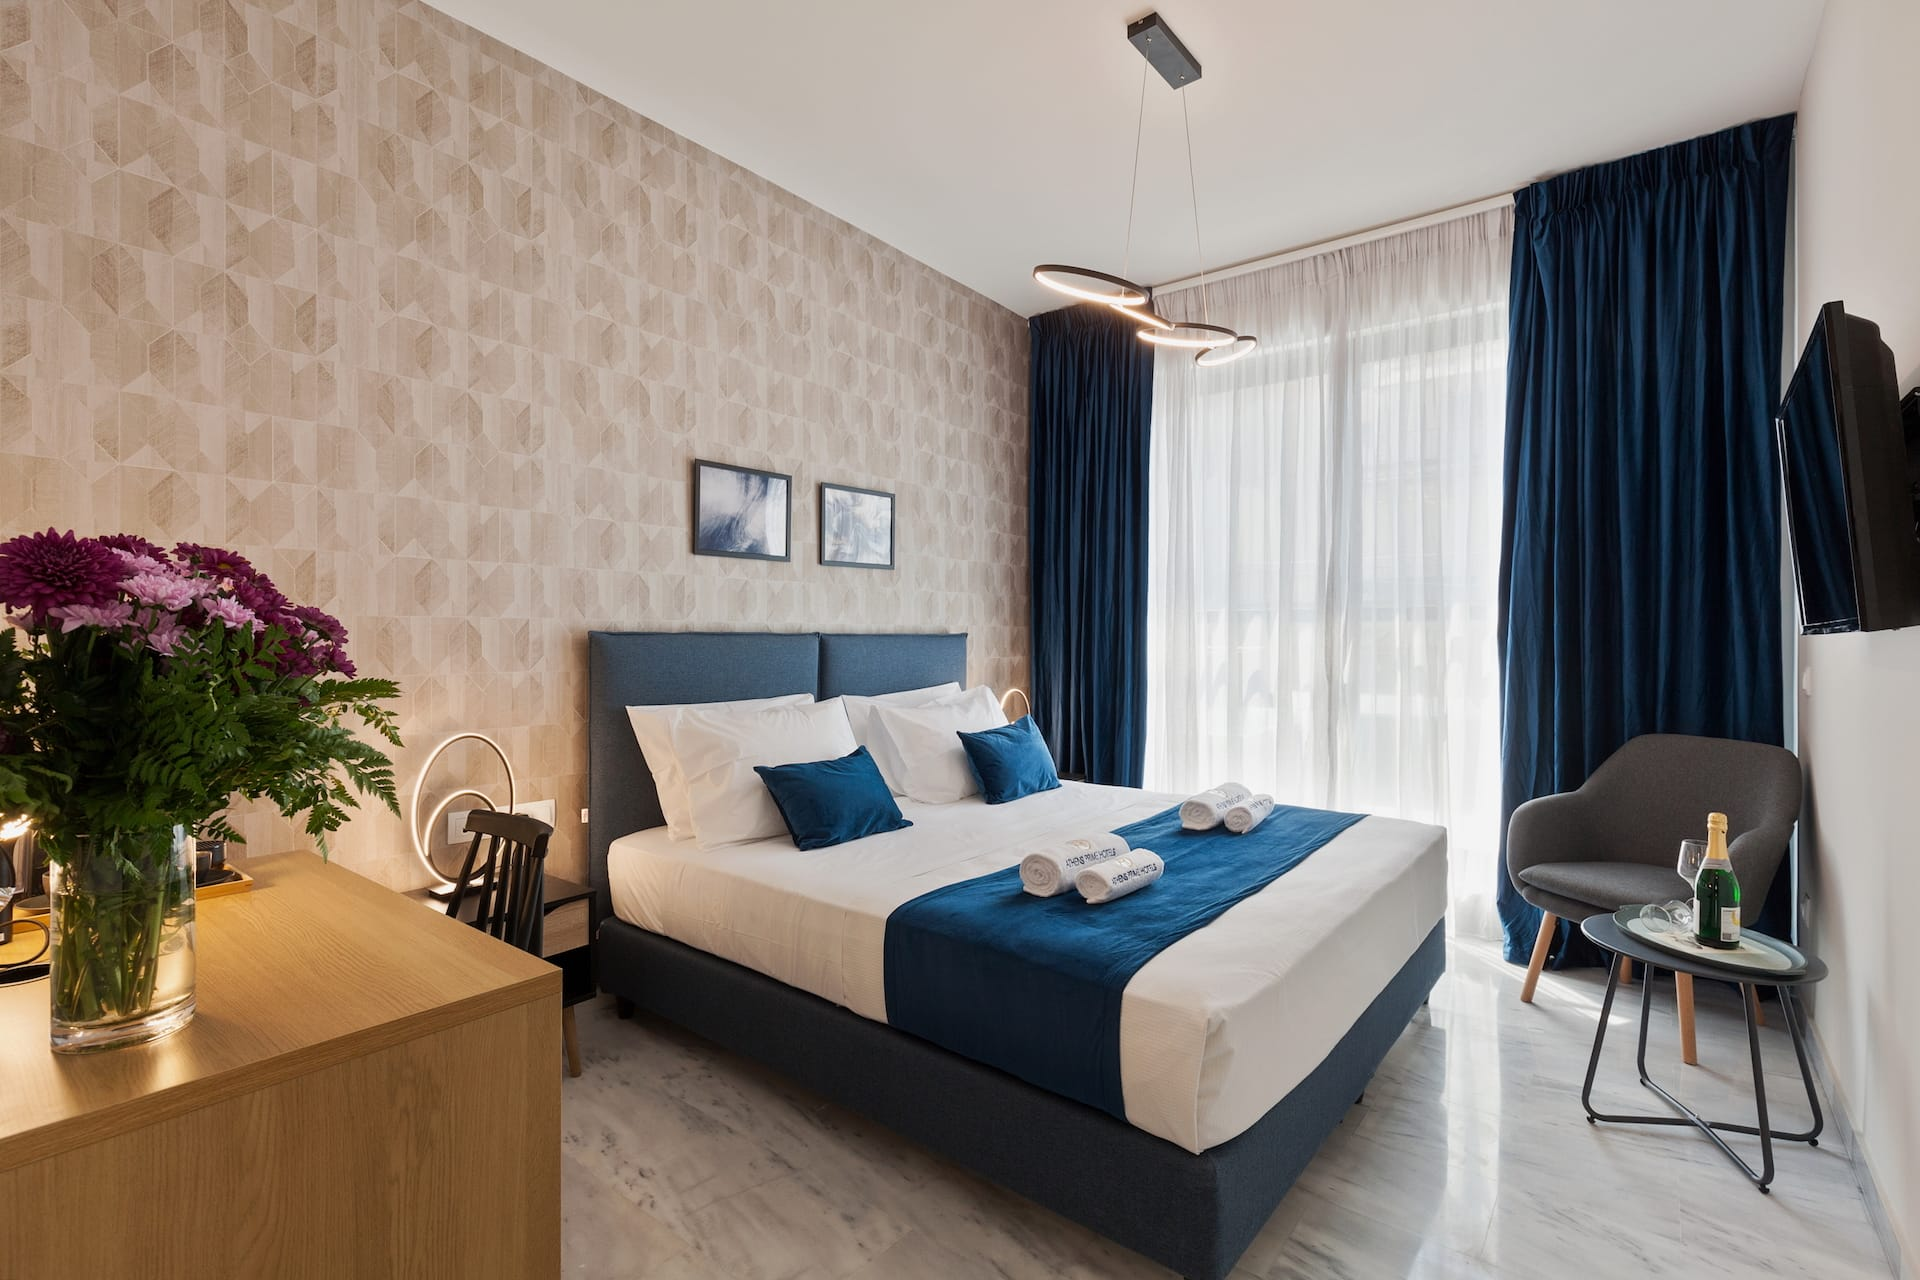 The Trendy by Athens Prime hotels Deluxe Room. Luxury double rooms in the center of Athens, Greece